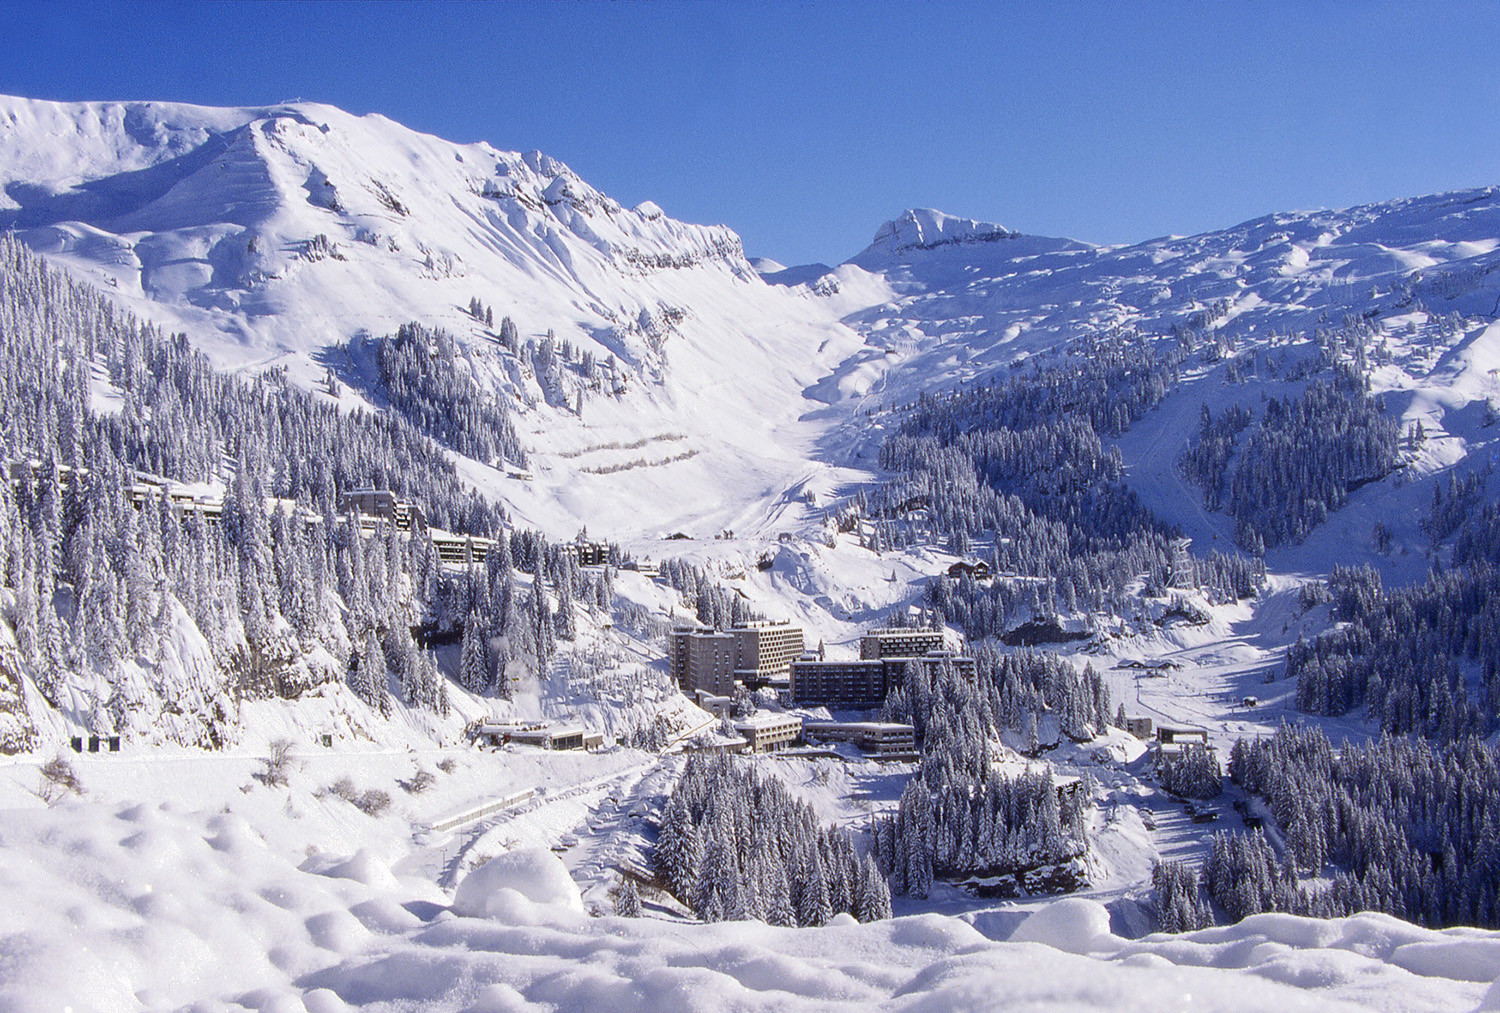 A powder-filled Flaine in Le Grand Massif, France.